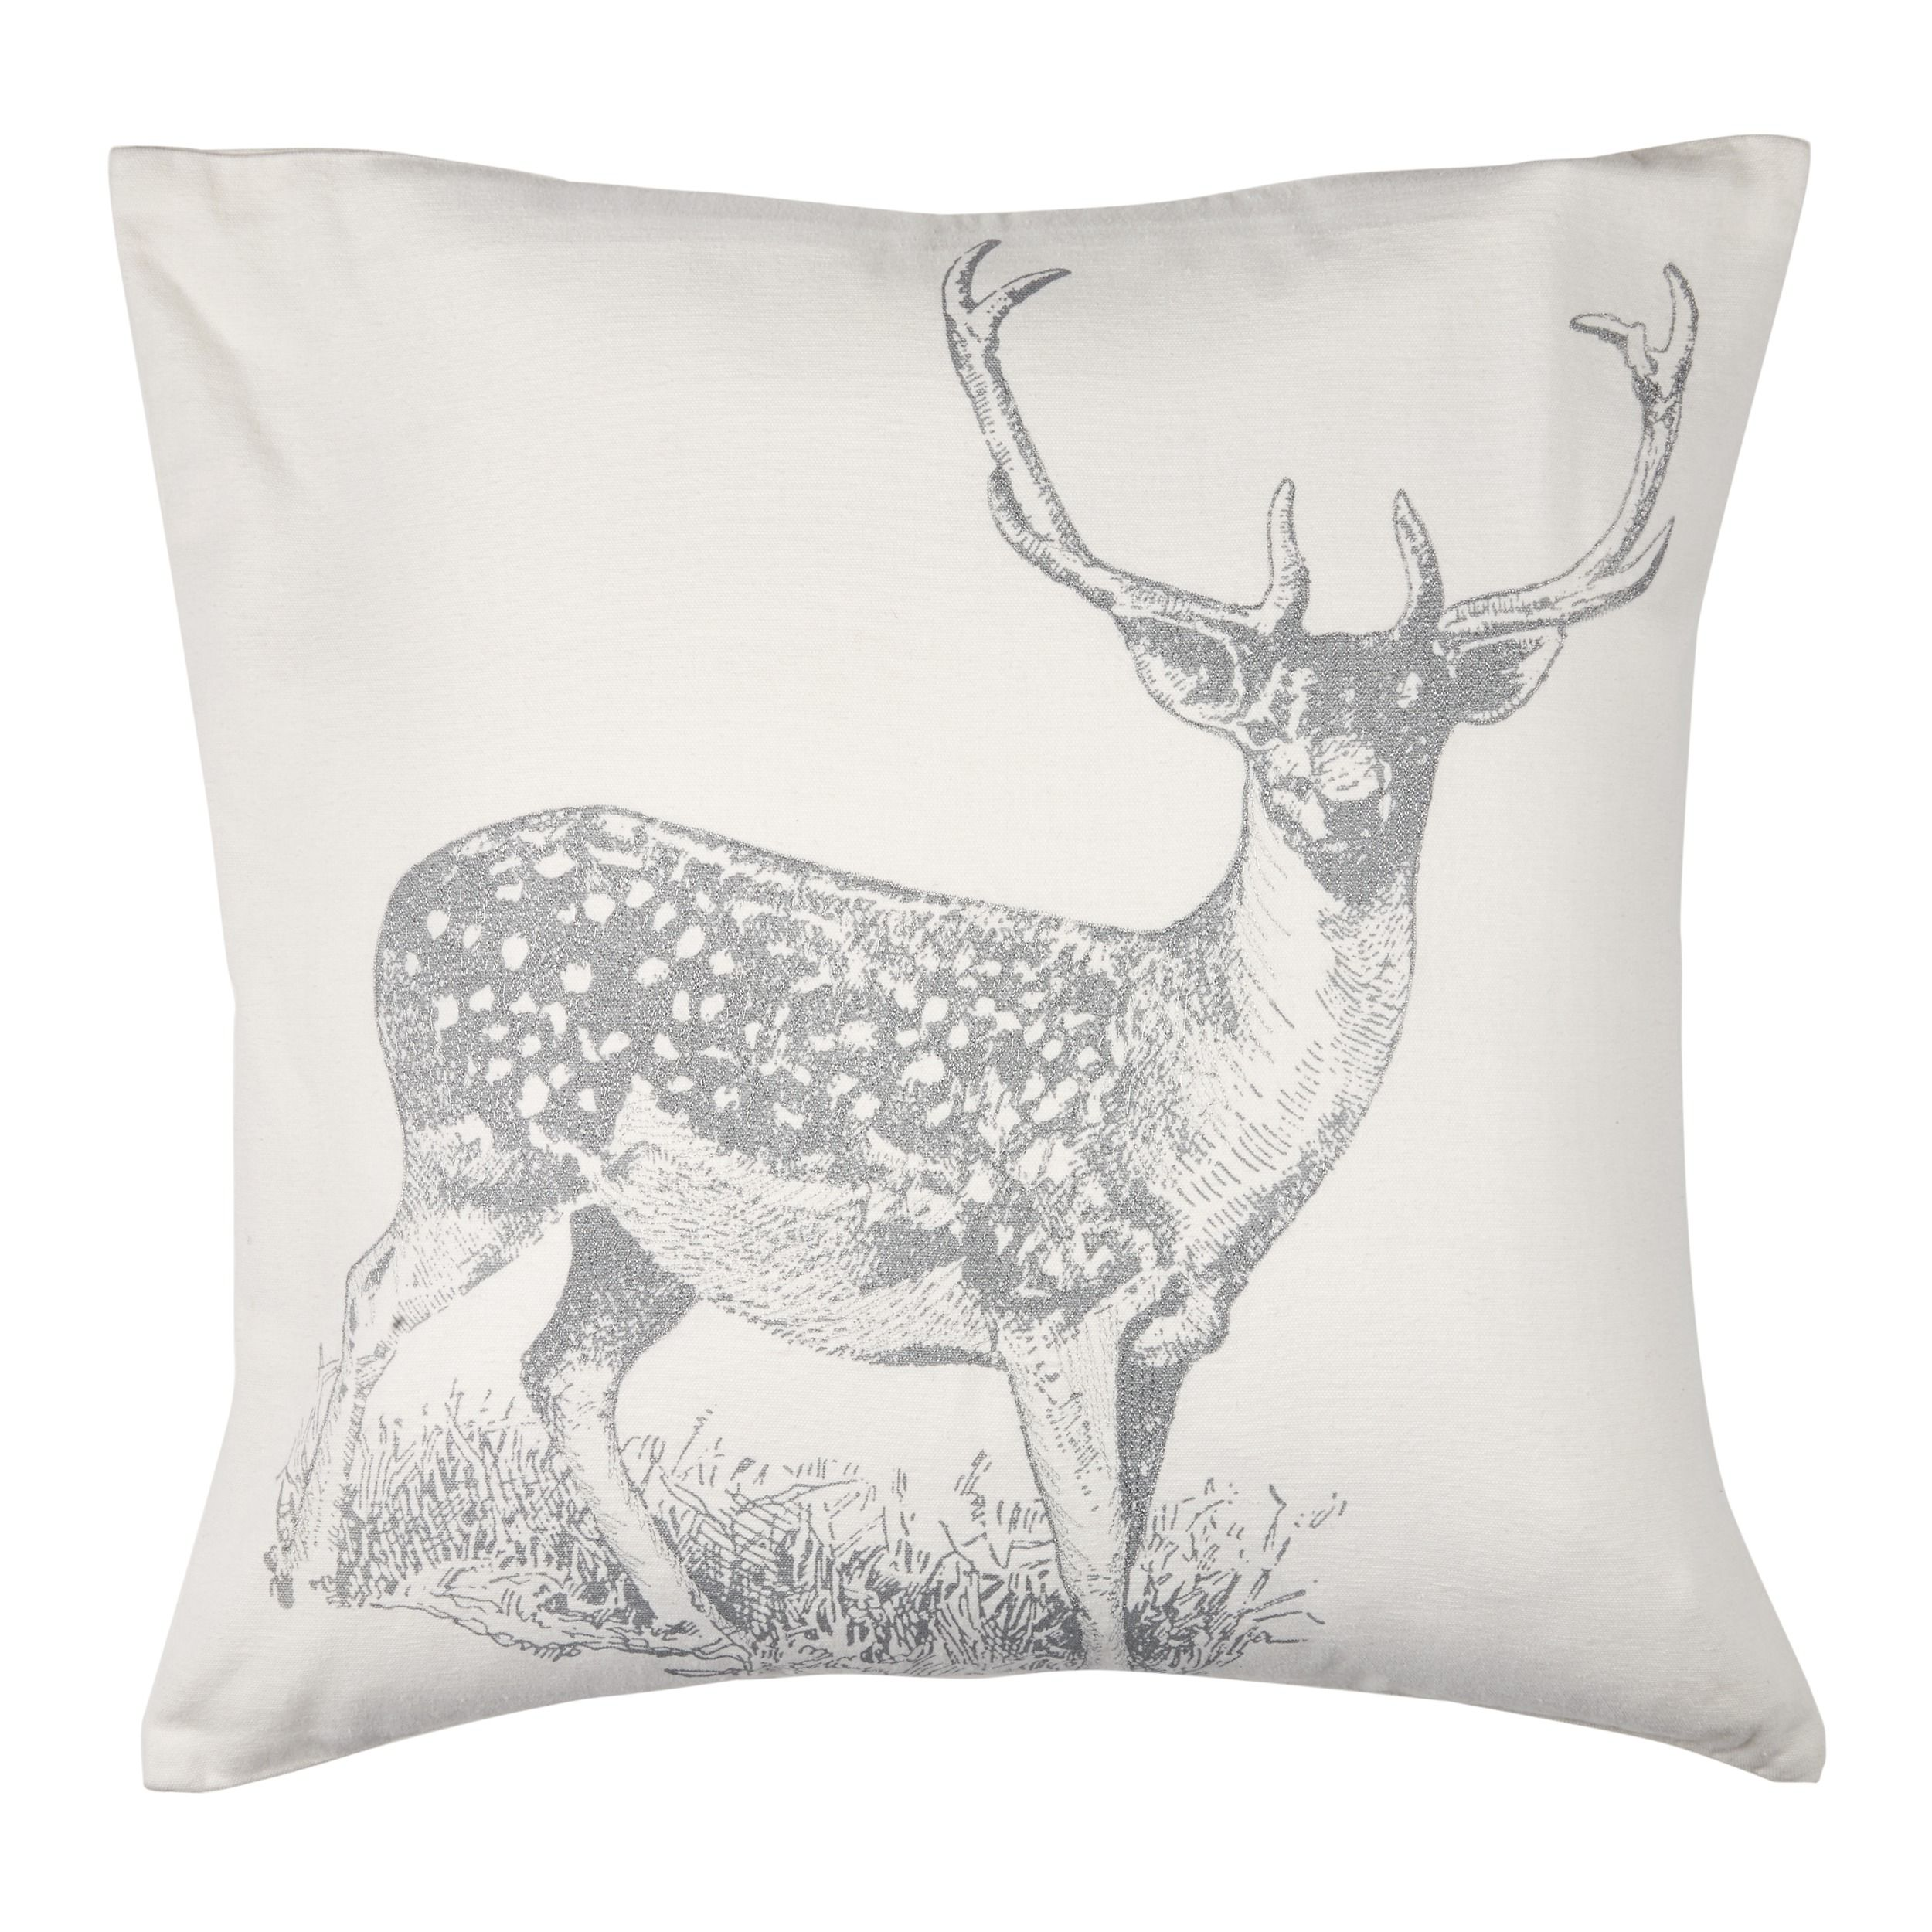 linen red product deer two uk covers x throw duvet cushion pillow christmas pillows